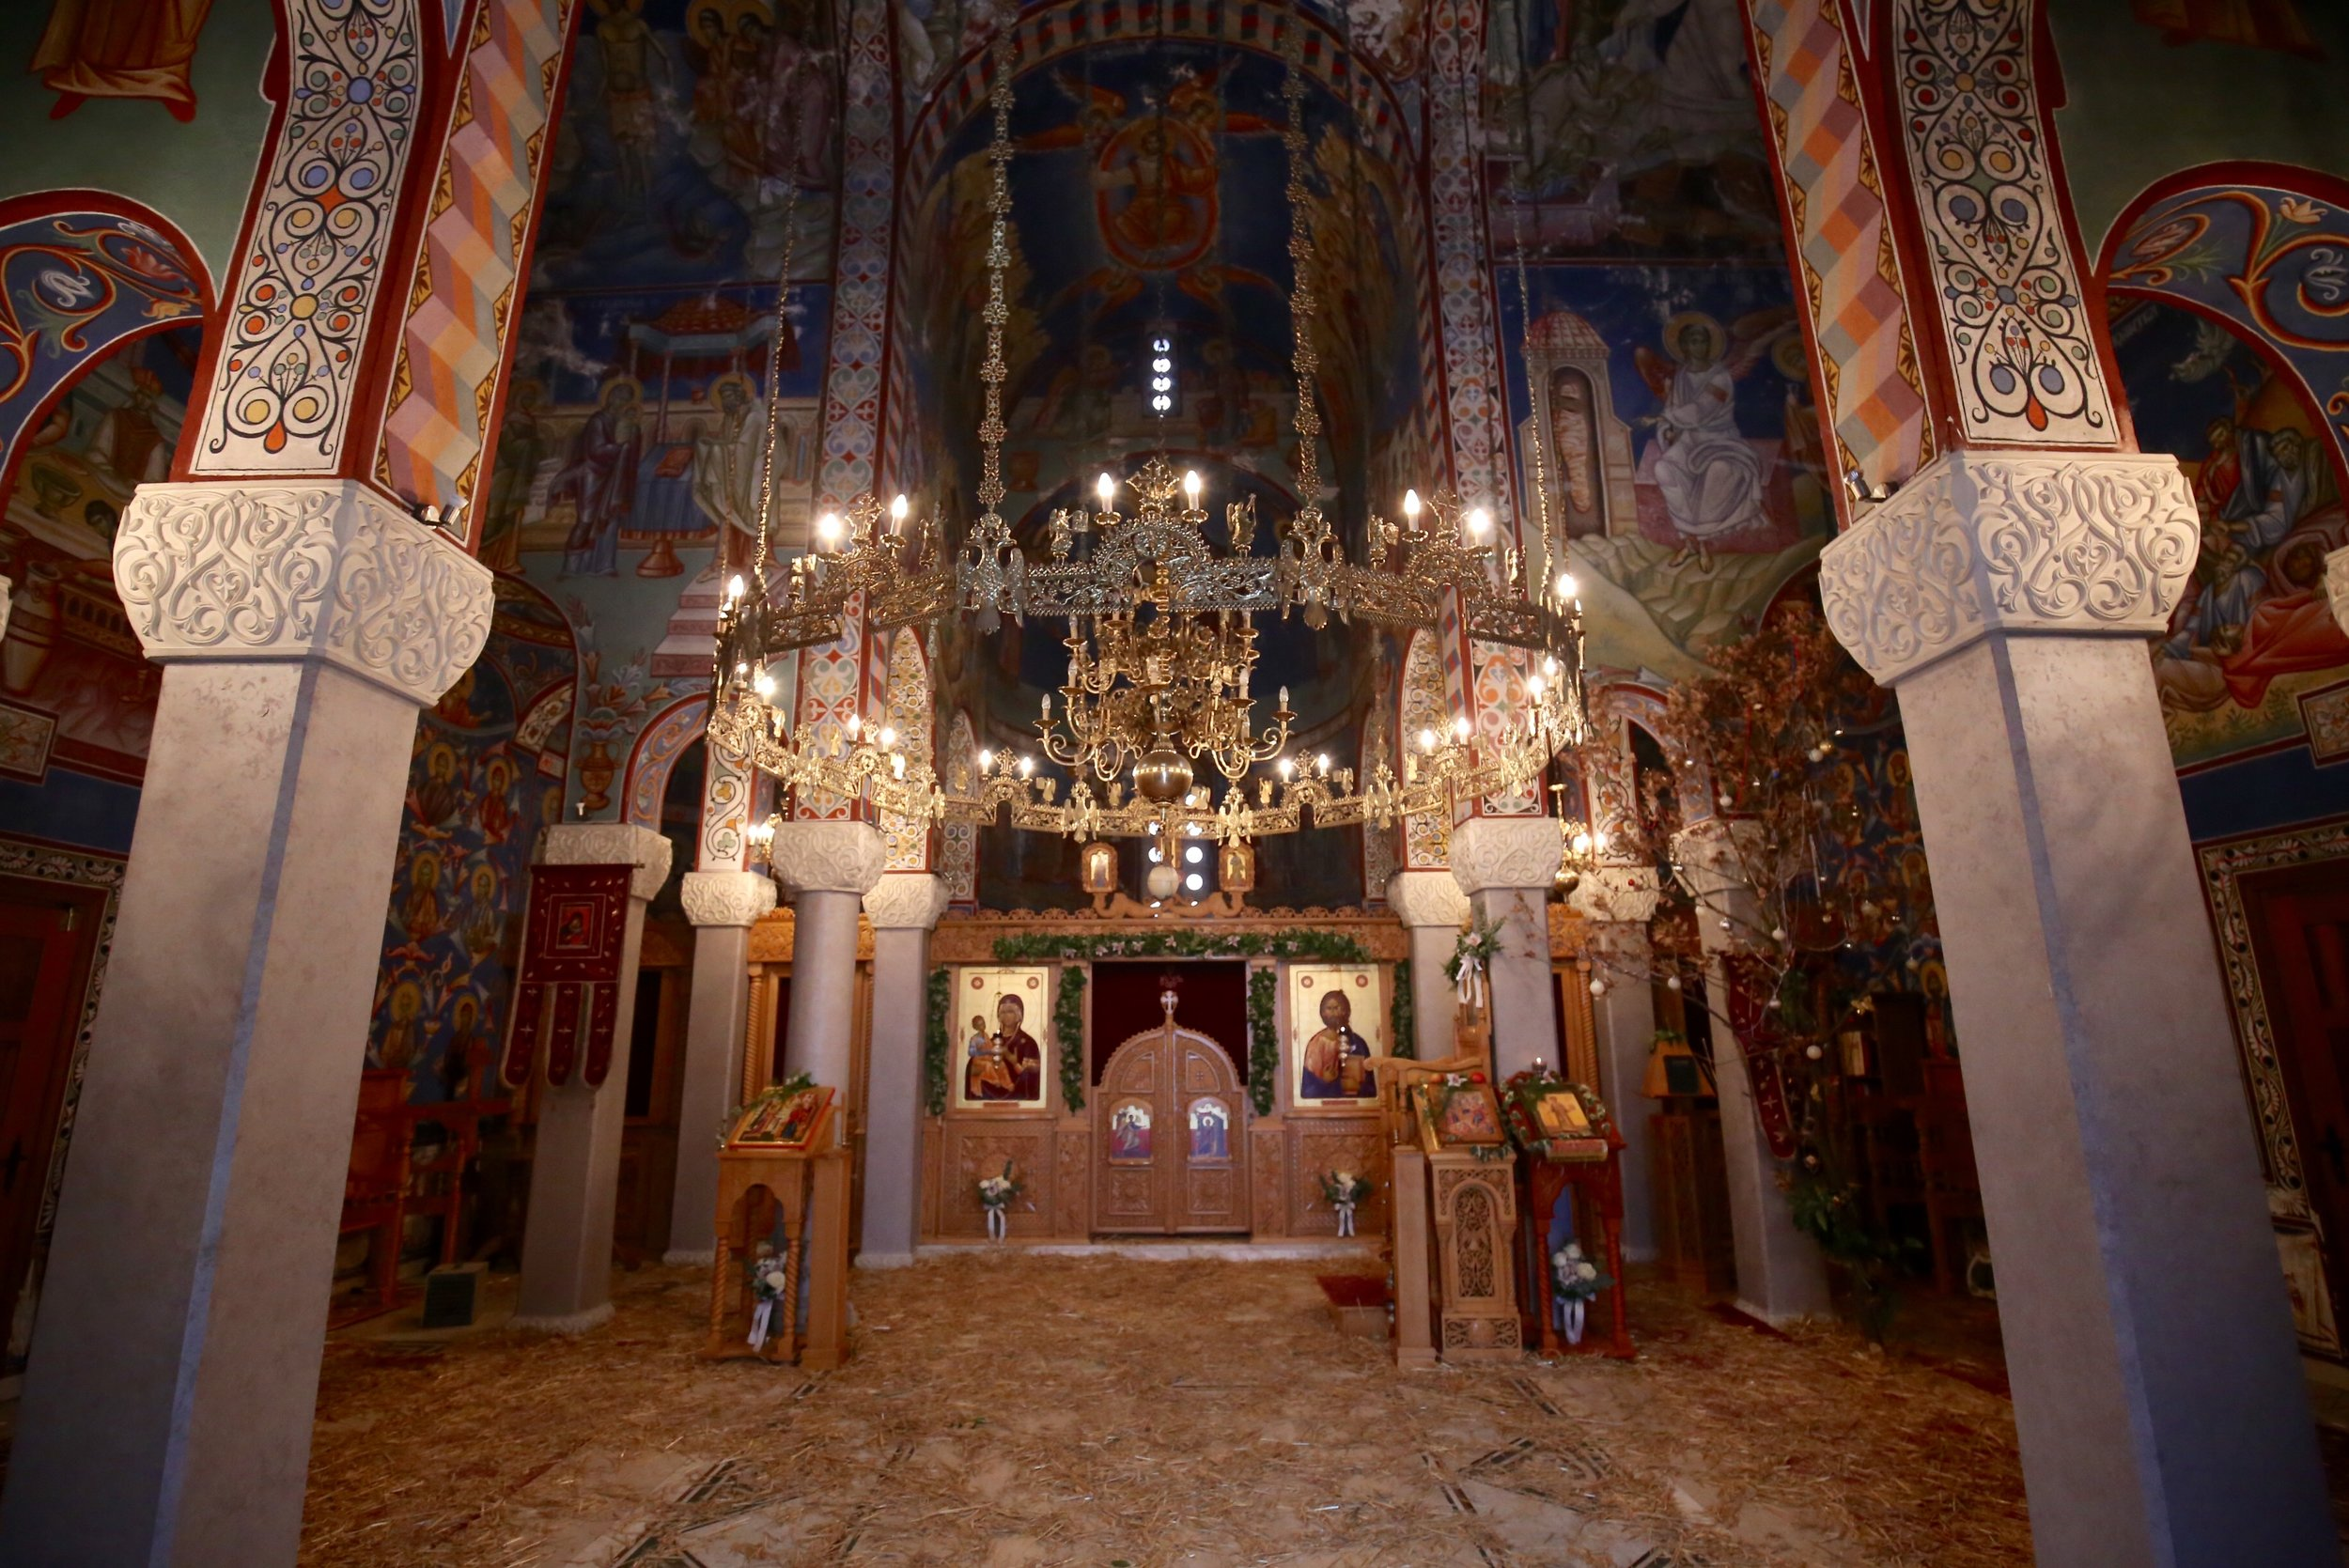 Orthodox Bosnian church interior - painted colours and gold chandelier.